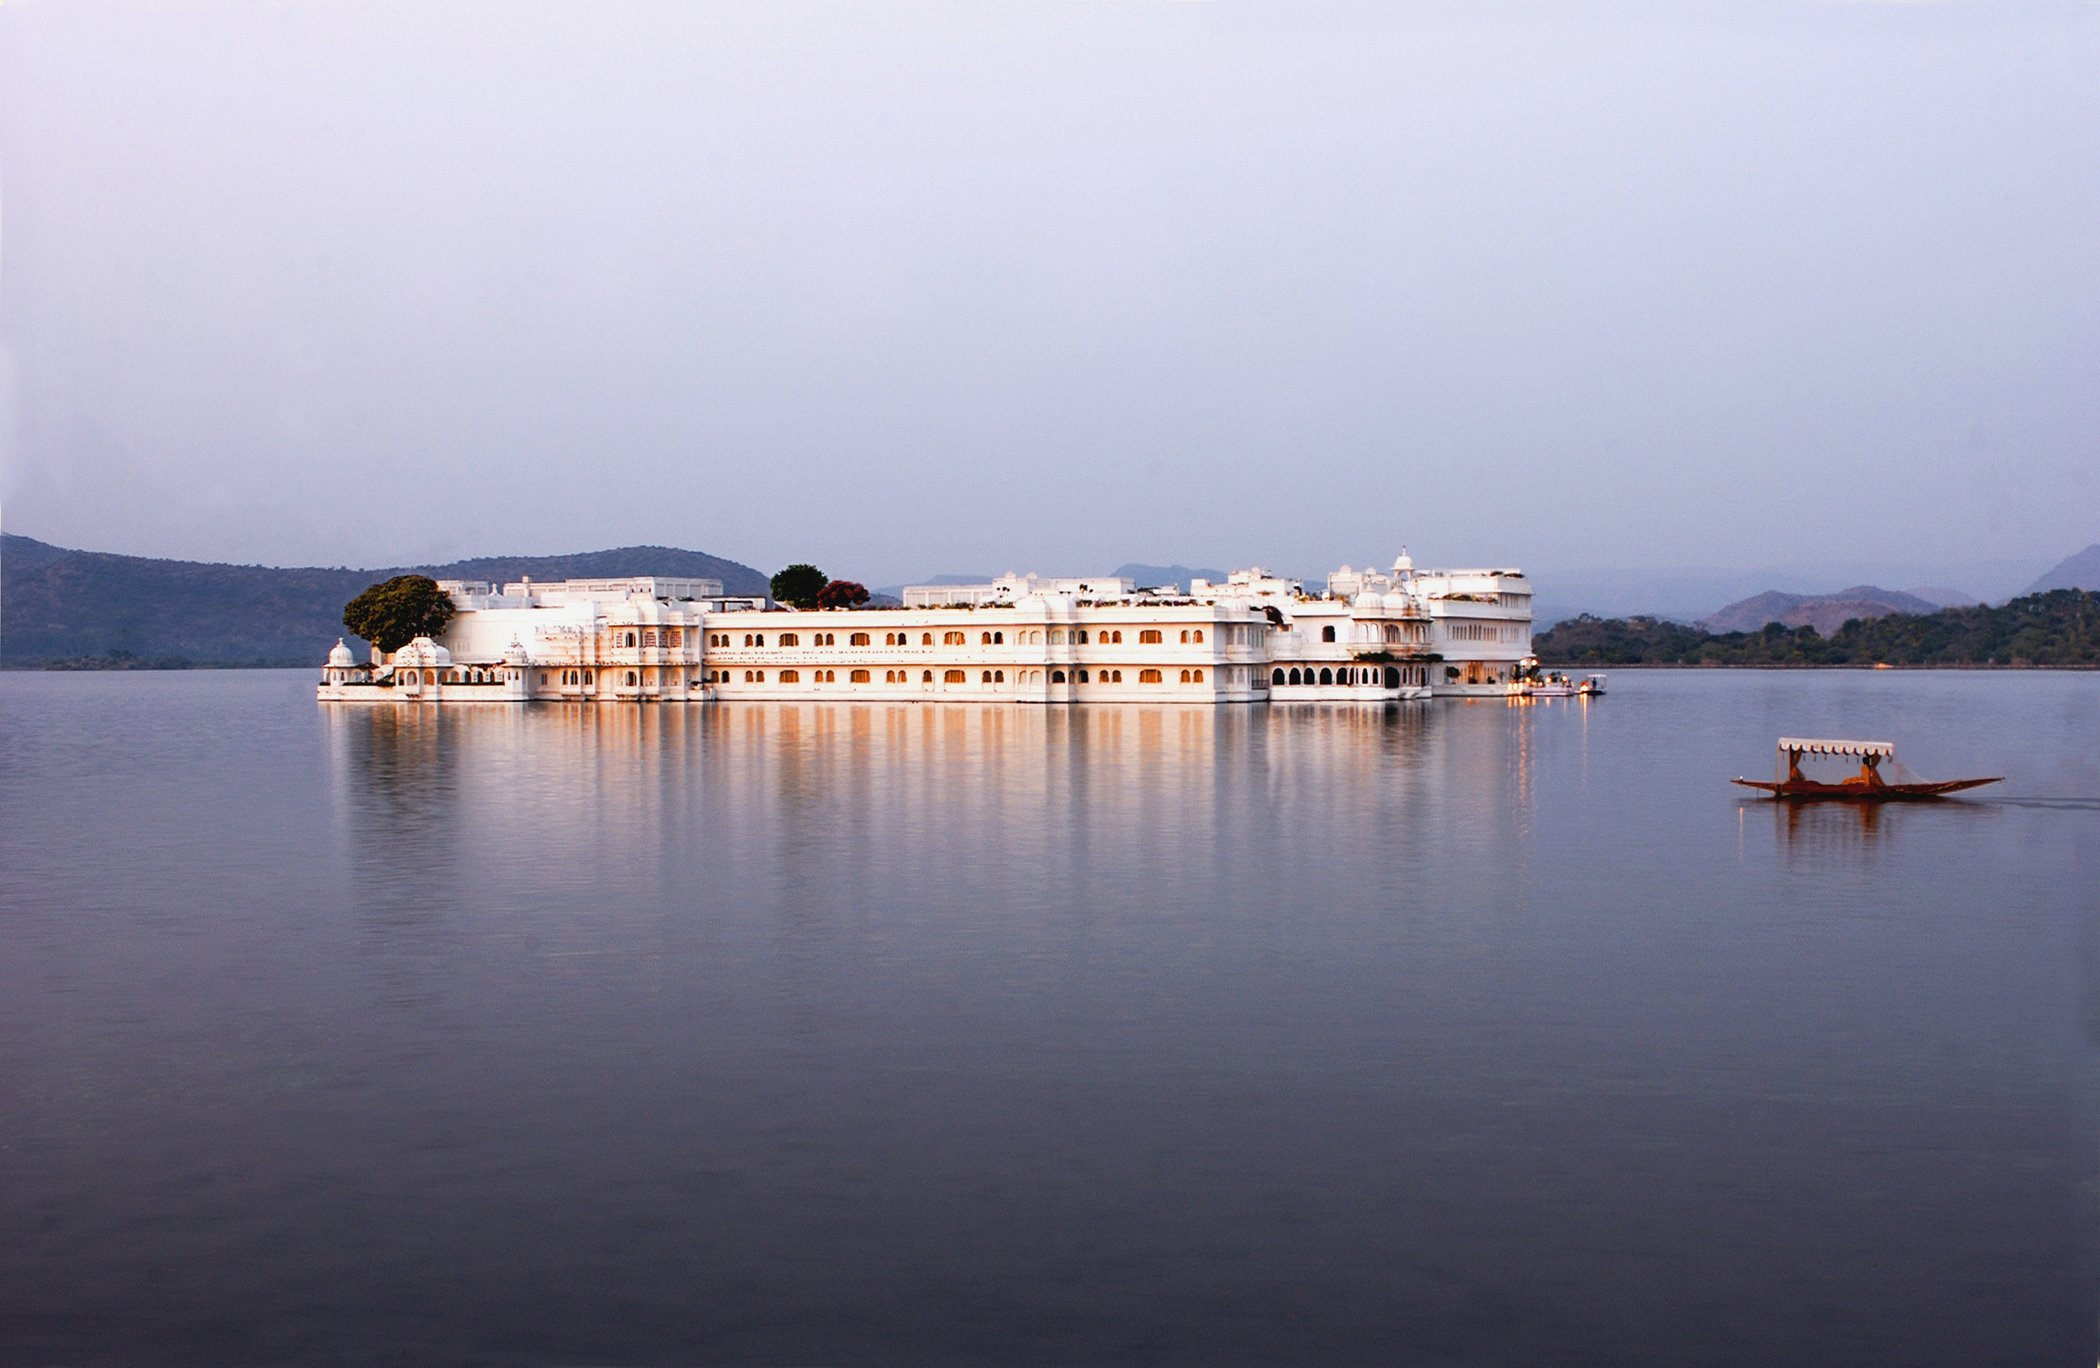 The Lake Palace Hotel in Udaipur (Octopussy - 1983)